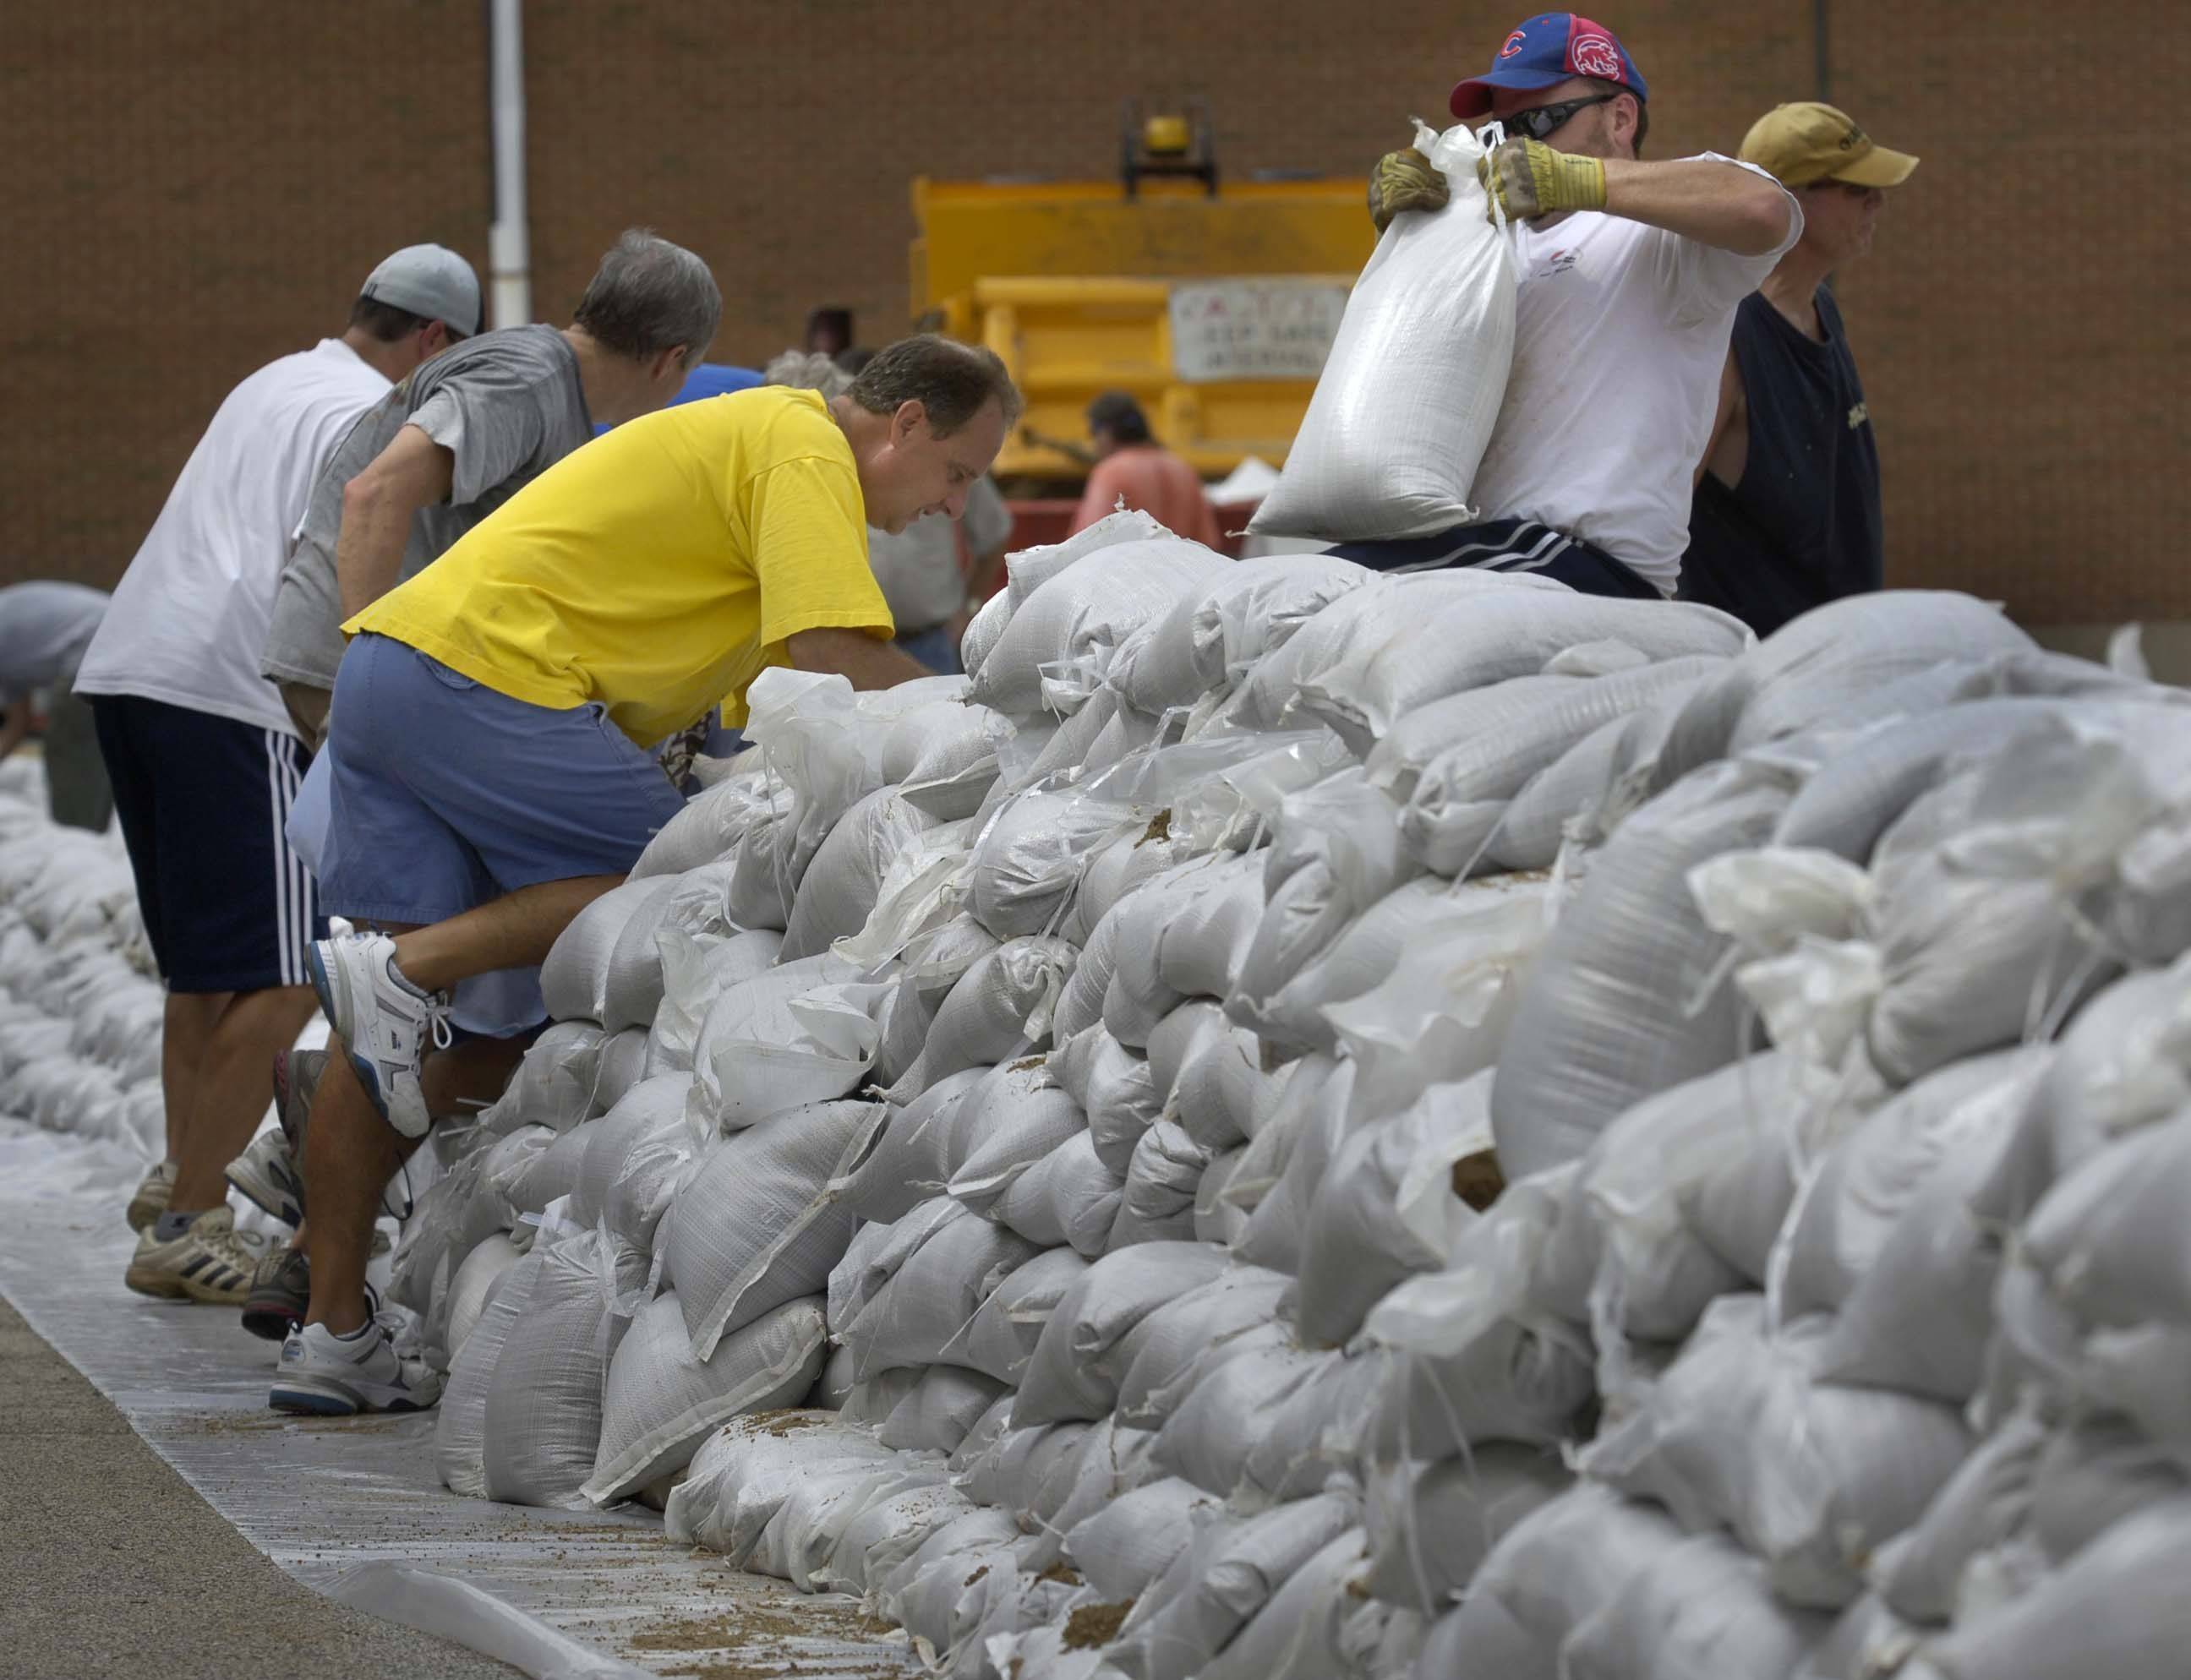 Federal officials have authorized a $2.4 million grant for demolition of Gurnee Grade School in a flood-prone area near the Des Plaines River. That'll end the need for volunteer sandbaggers such as these who answered the call in 2007.